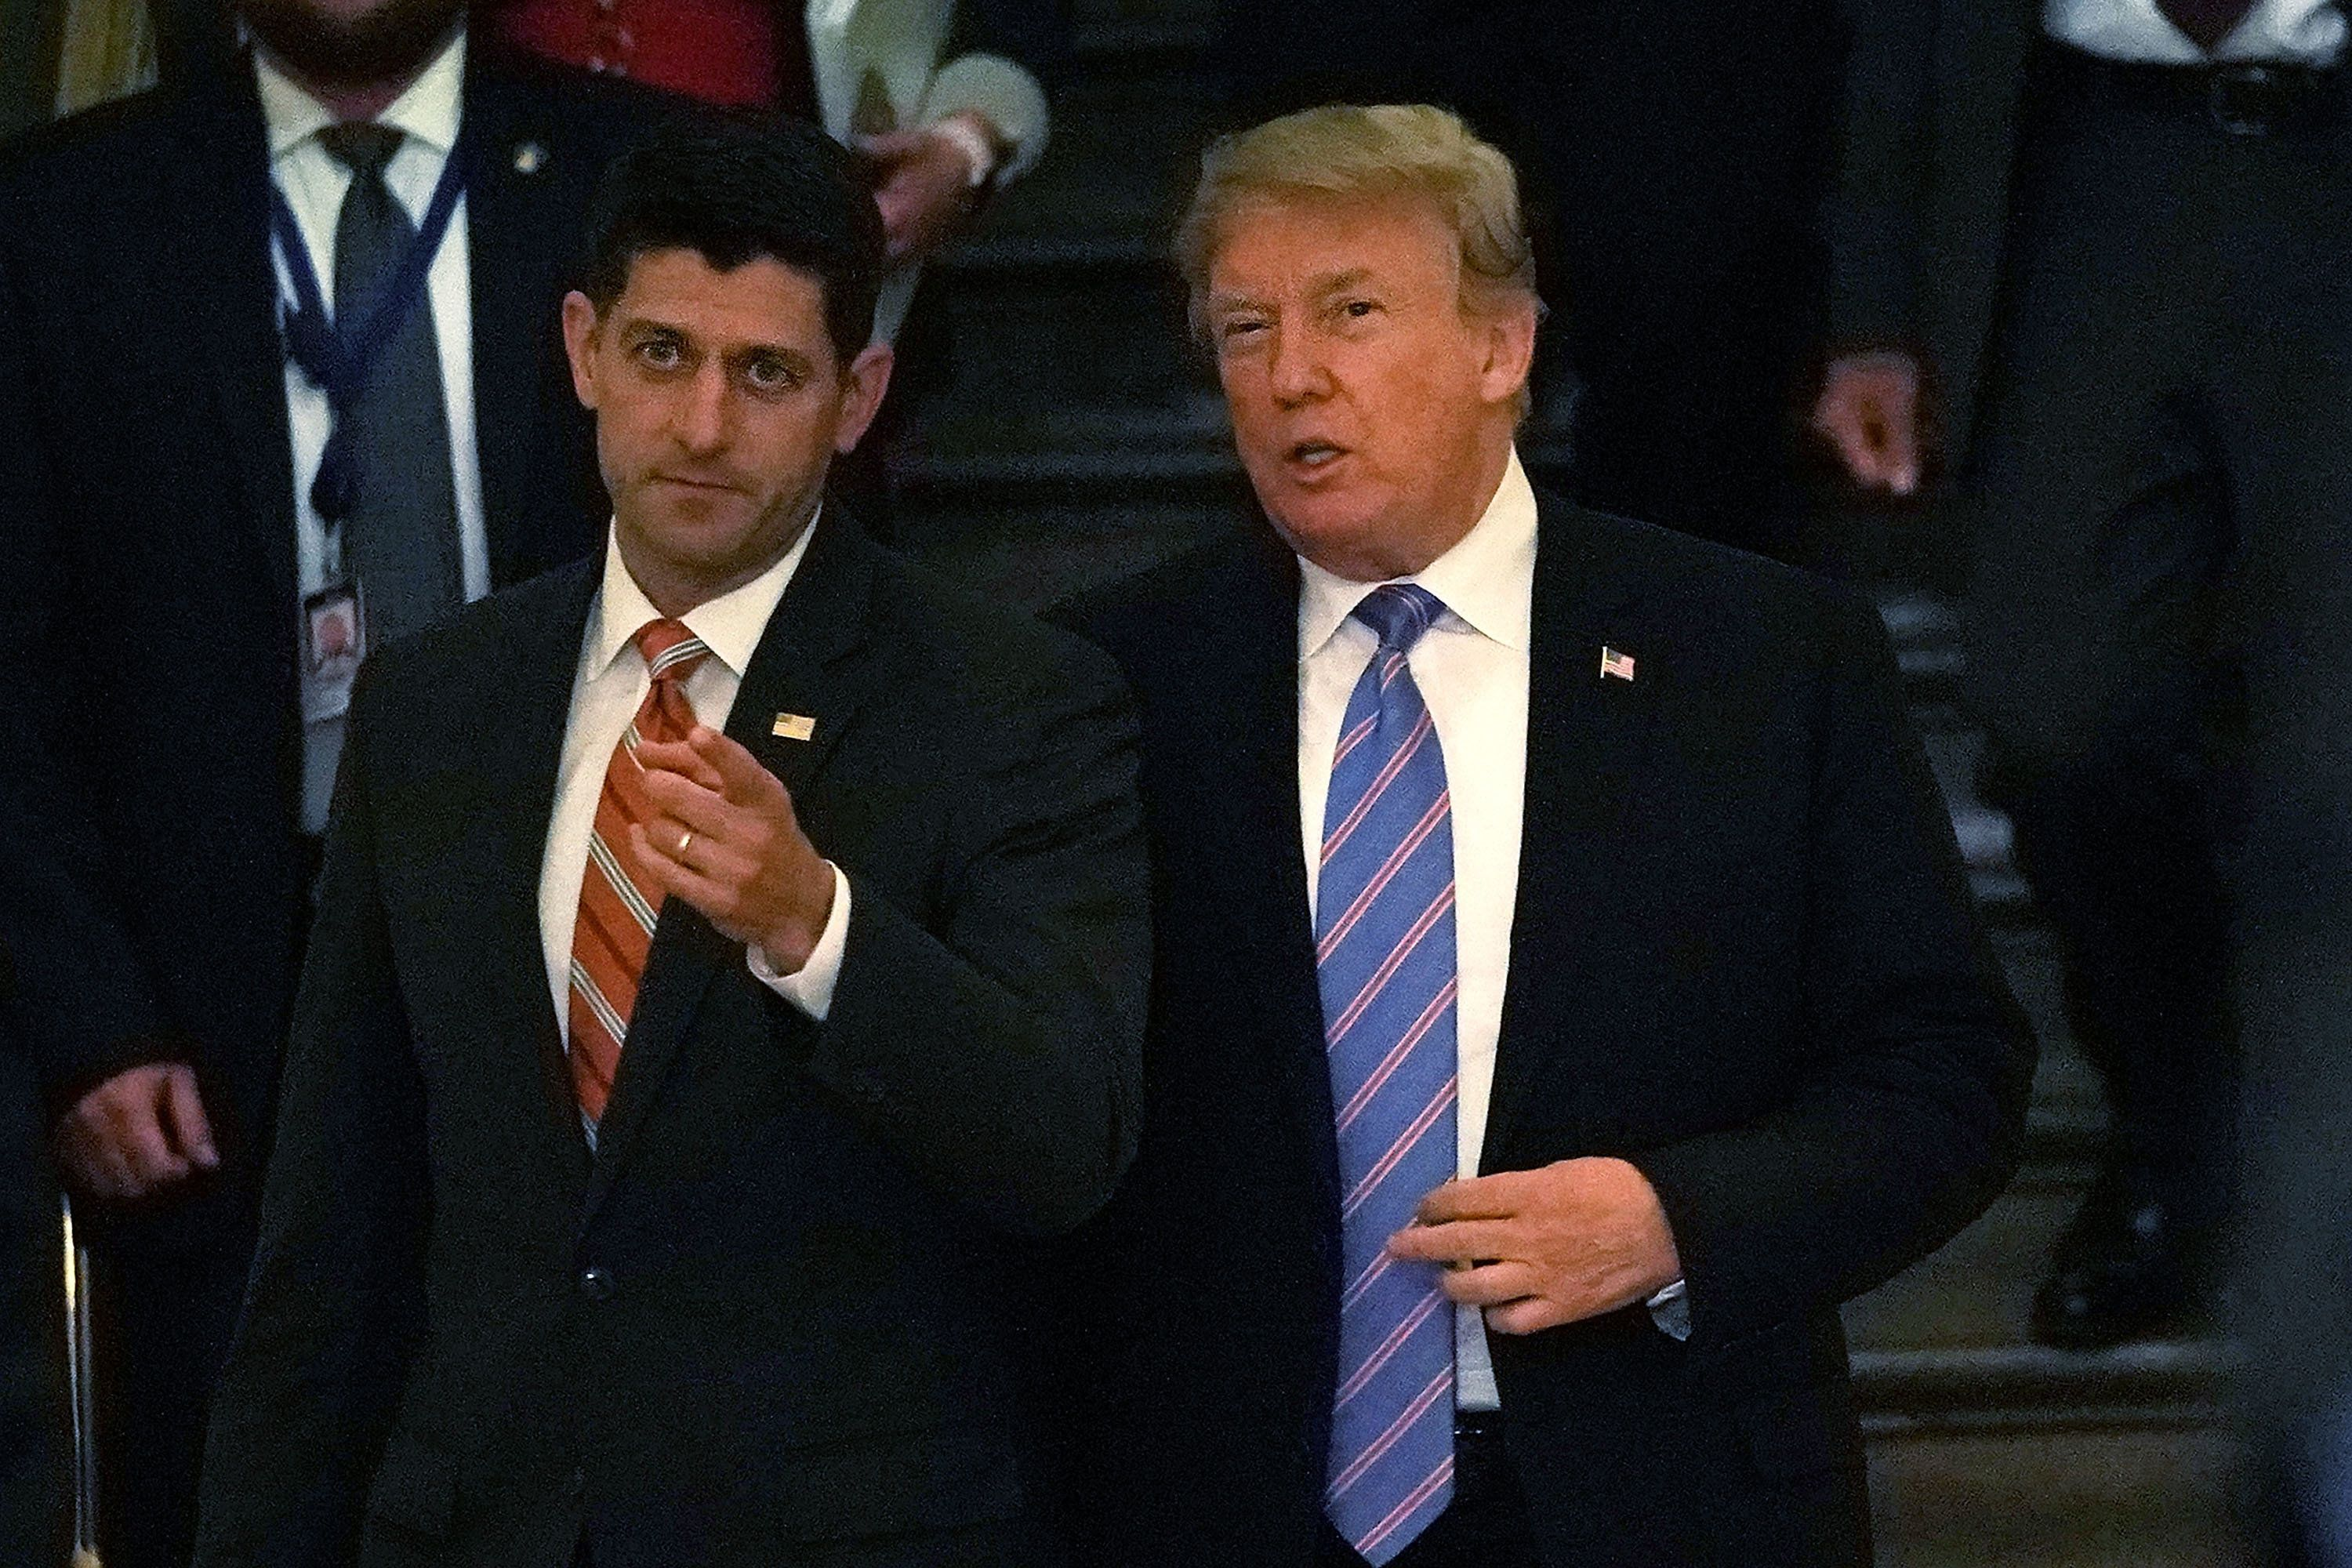 WASHINGTON, DC - JUNE 19:  Accompanied by Speaker of the House Rep. Paul Ryan (R-WI) (L), U.S. President Donald Trump (R) arrives at a meeting with House Republicans at the U.S. Capitol June 19, 2018 in Washington, DC. Trump was on the Hill to discuss immigration with House Republicans.  (Photo by Alex Wong/Getty Images)